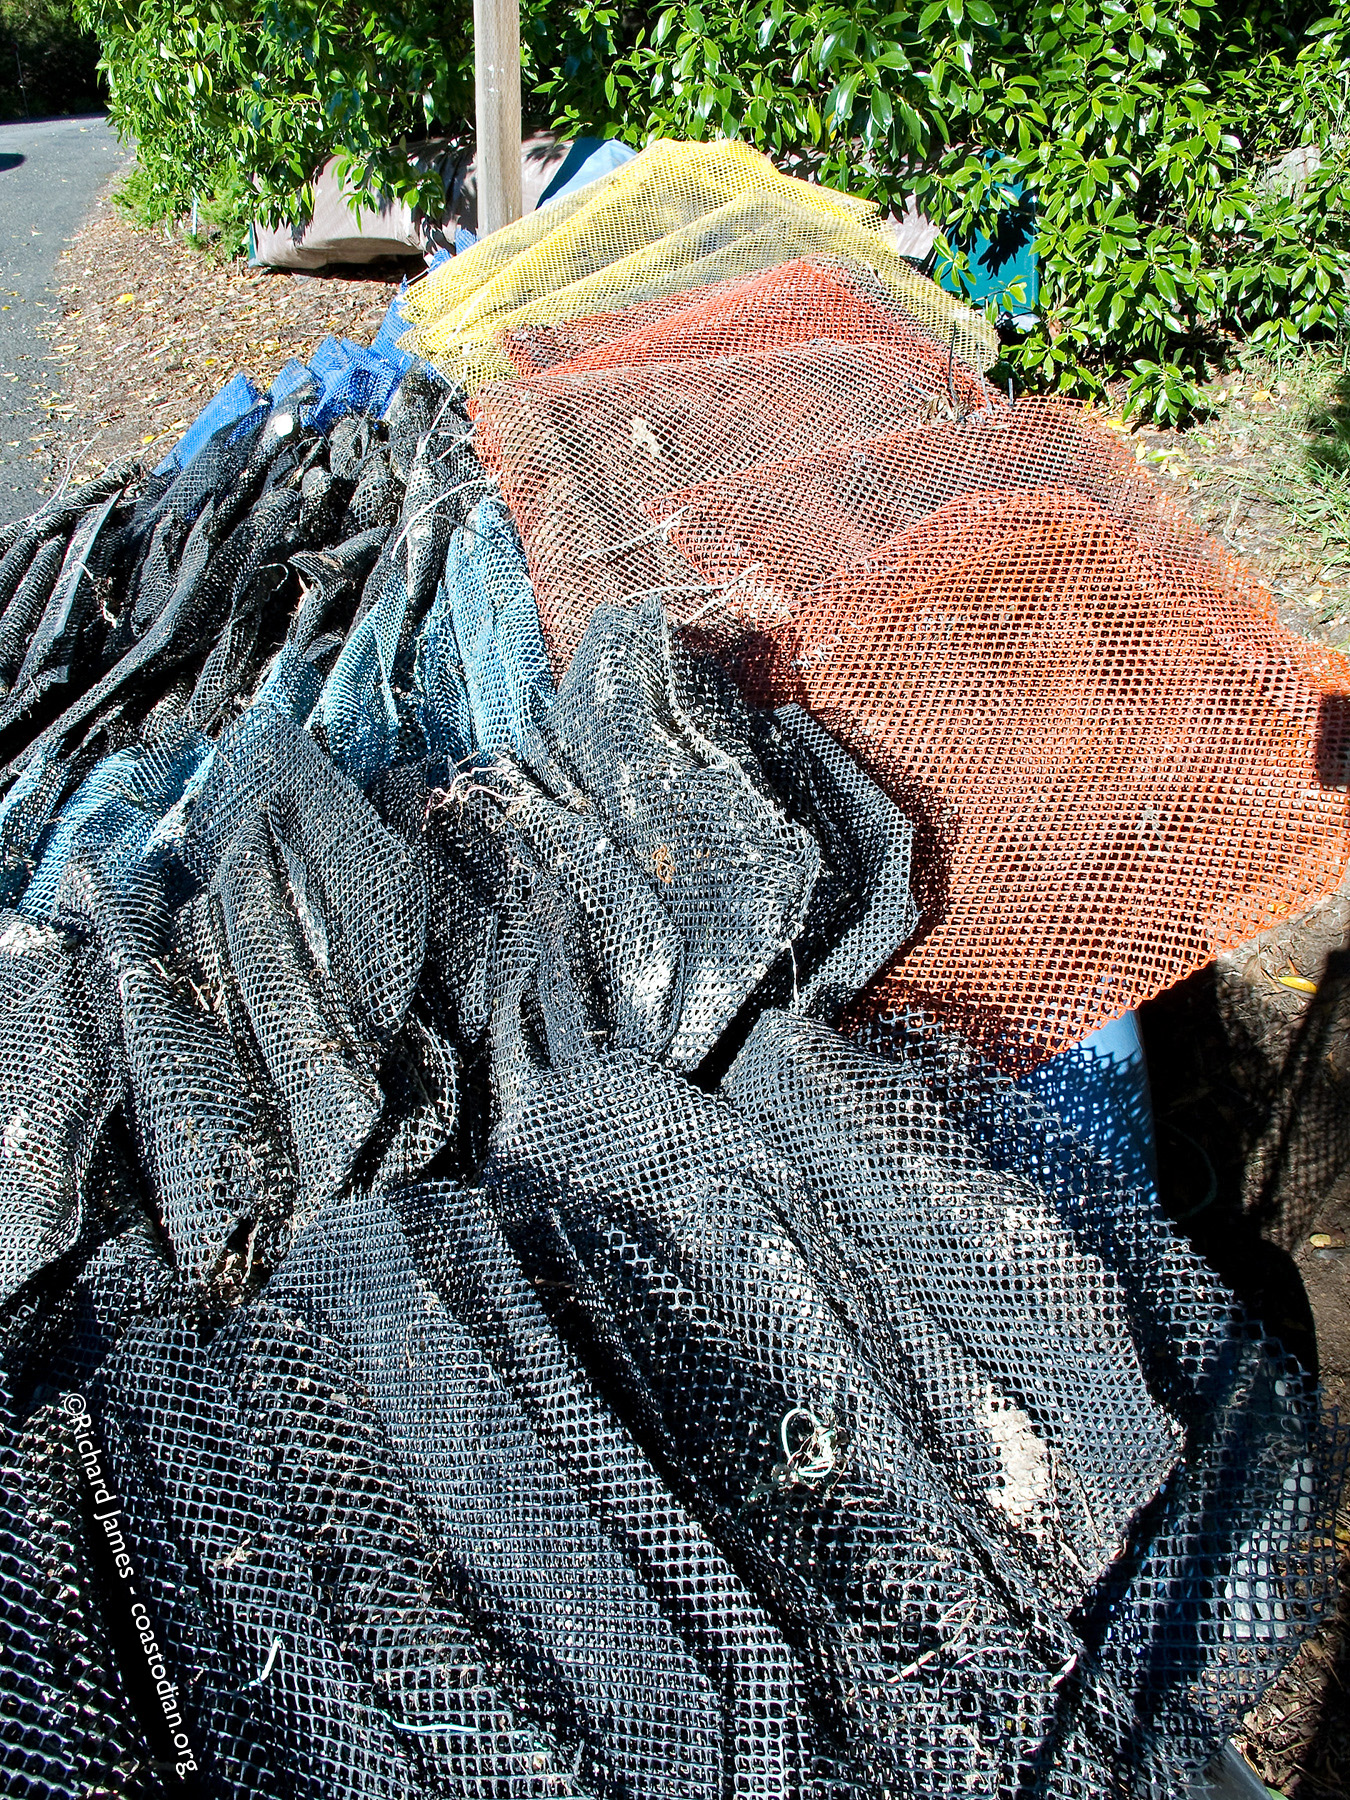 160 polyethelene oyster grow out bags left to the elements in Tomales Bay